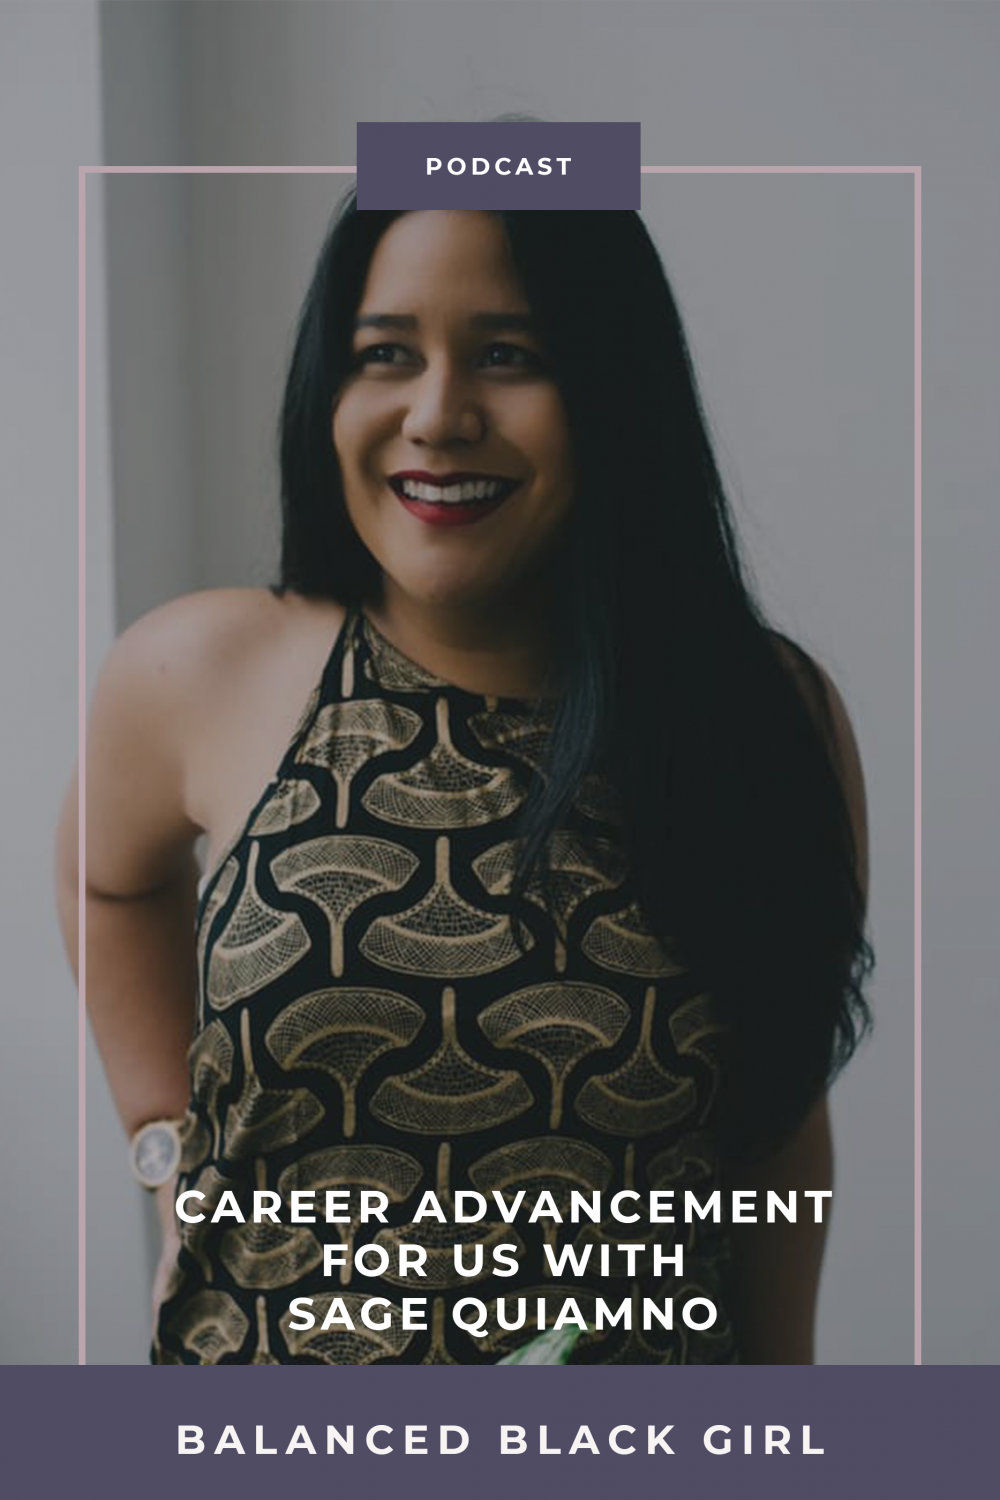 Episode 28: Career Advancement for Us with Sage Quiamno of Future for Us